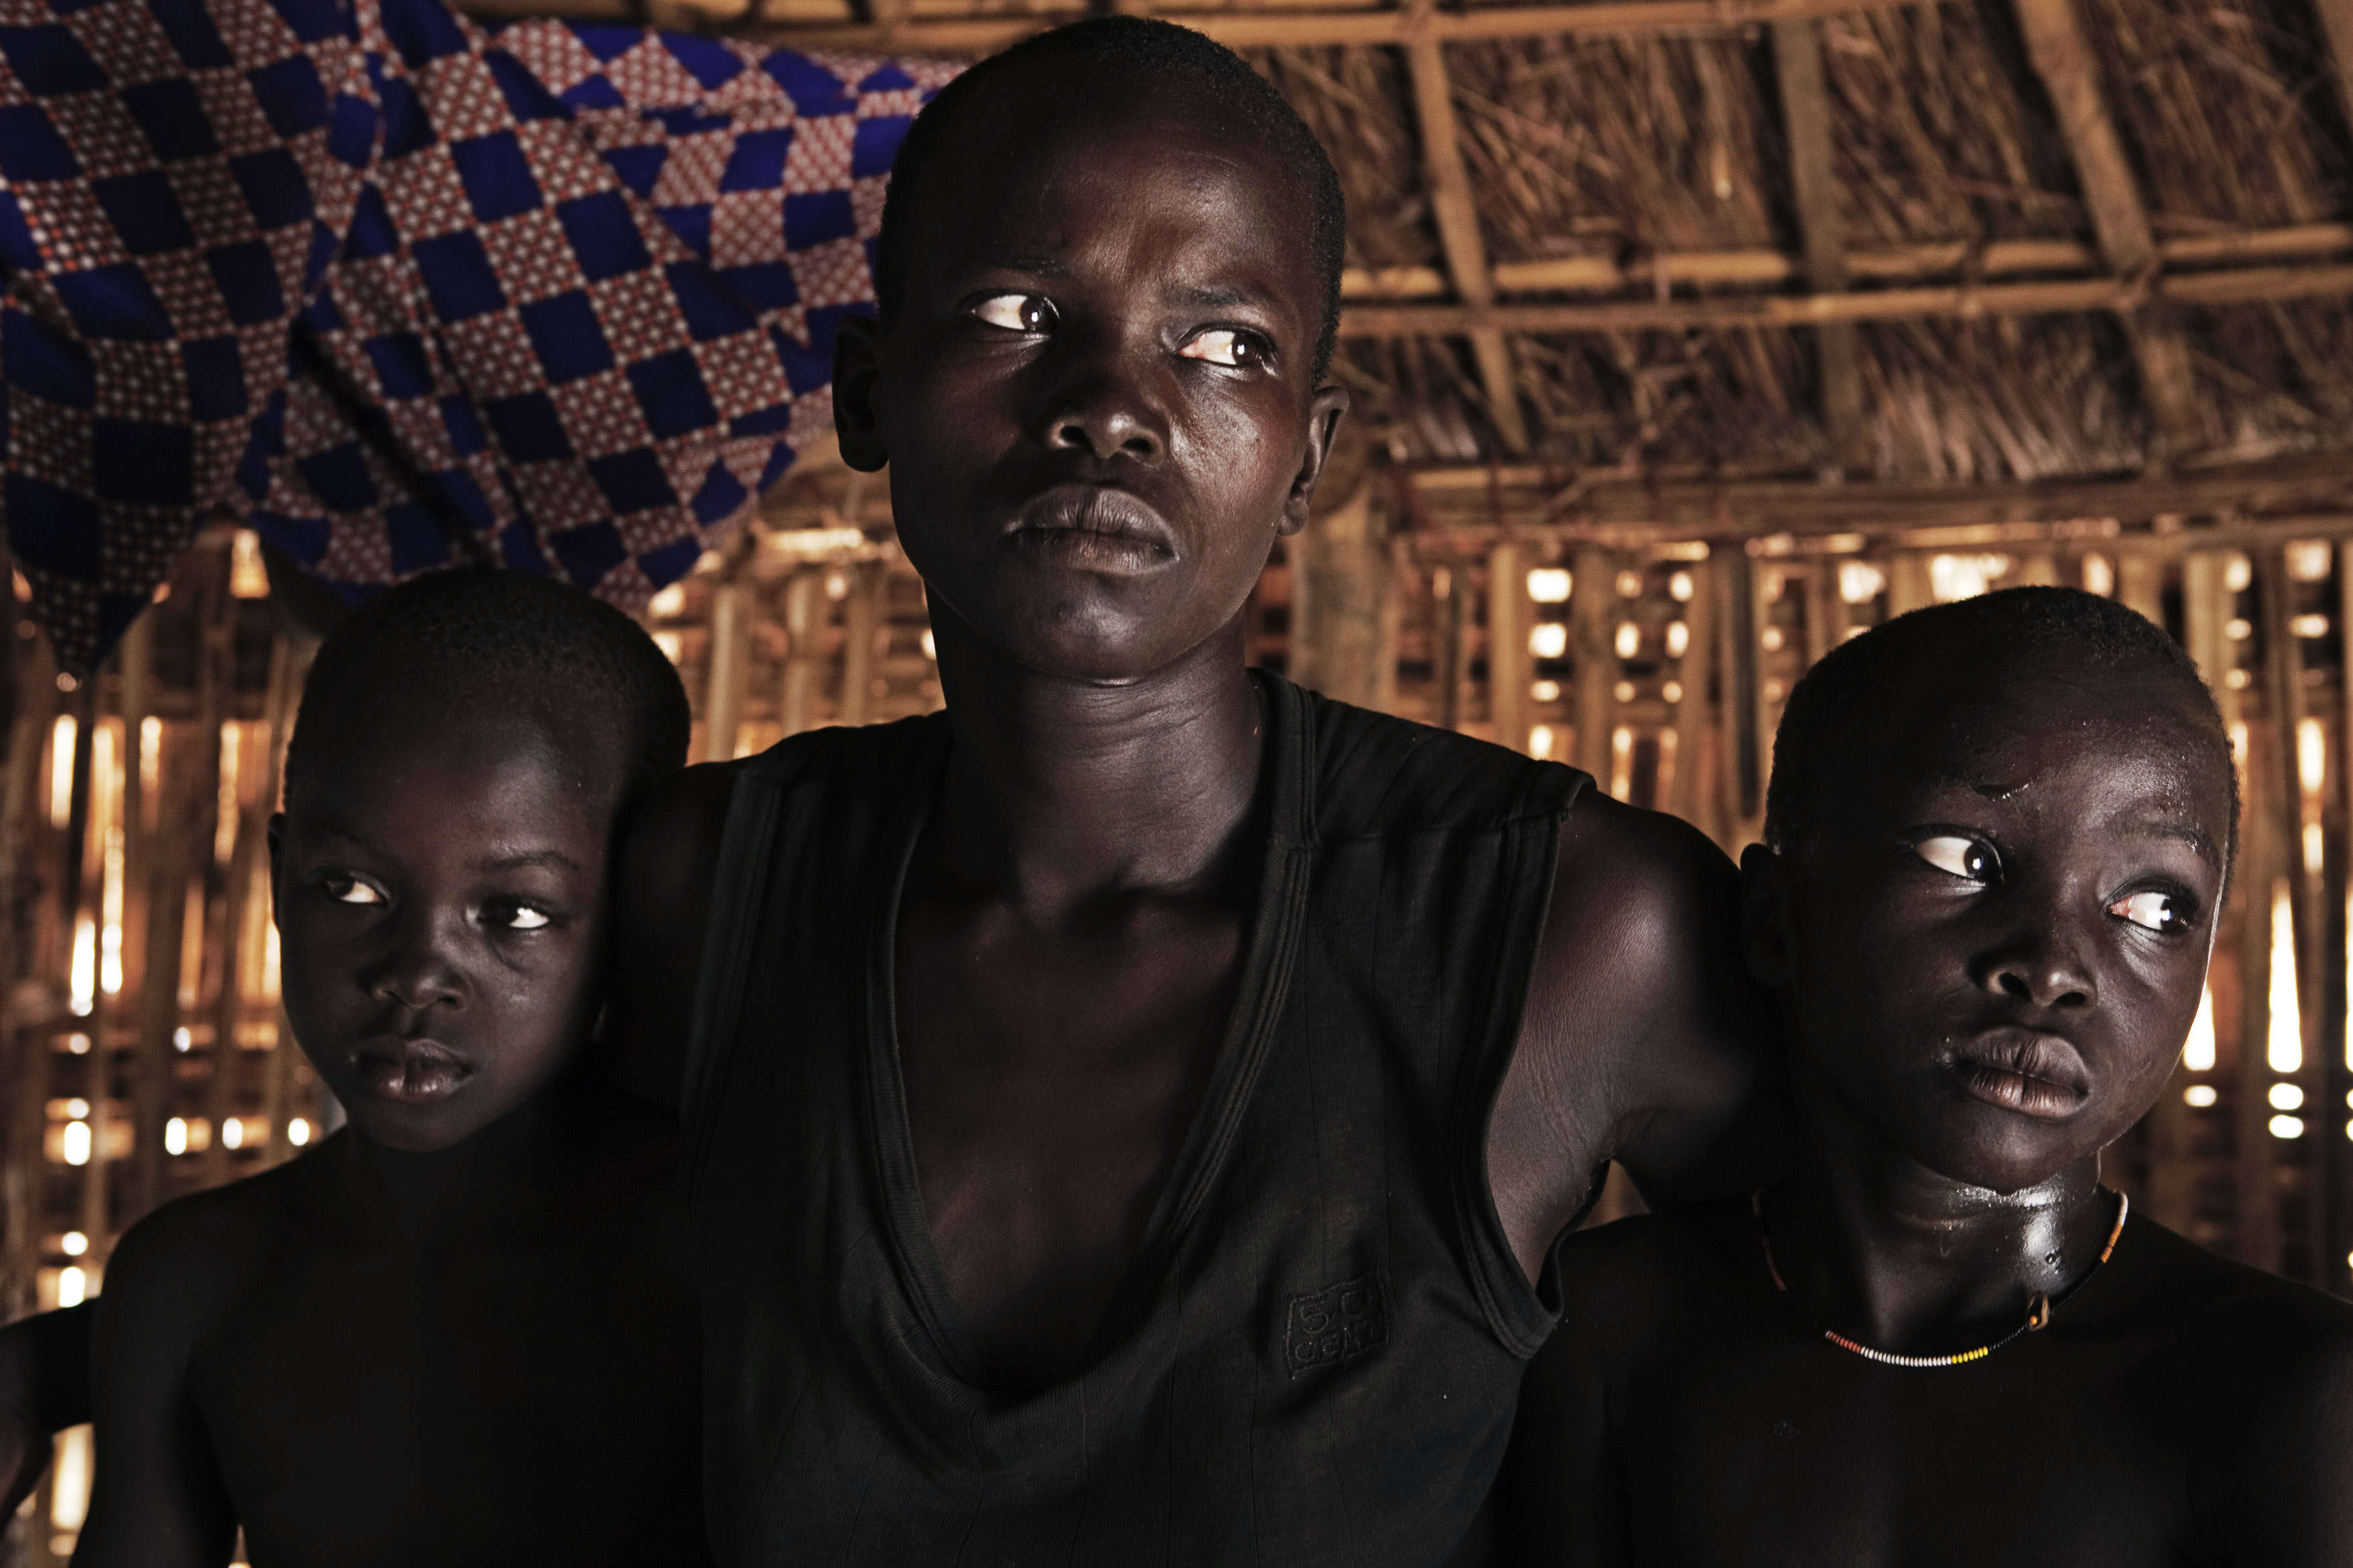 The Nyi-Bo family sits in a bamboo hut in the remote village Dongoi in Sudan. The family is a part of the indigenous tribe Jur. The patriarch of the family ...